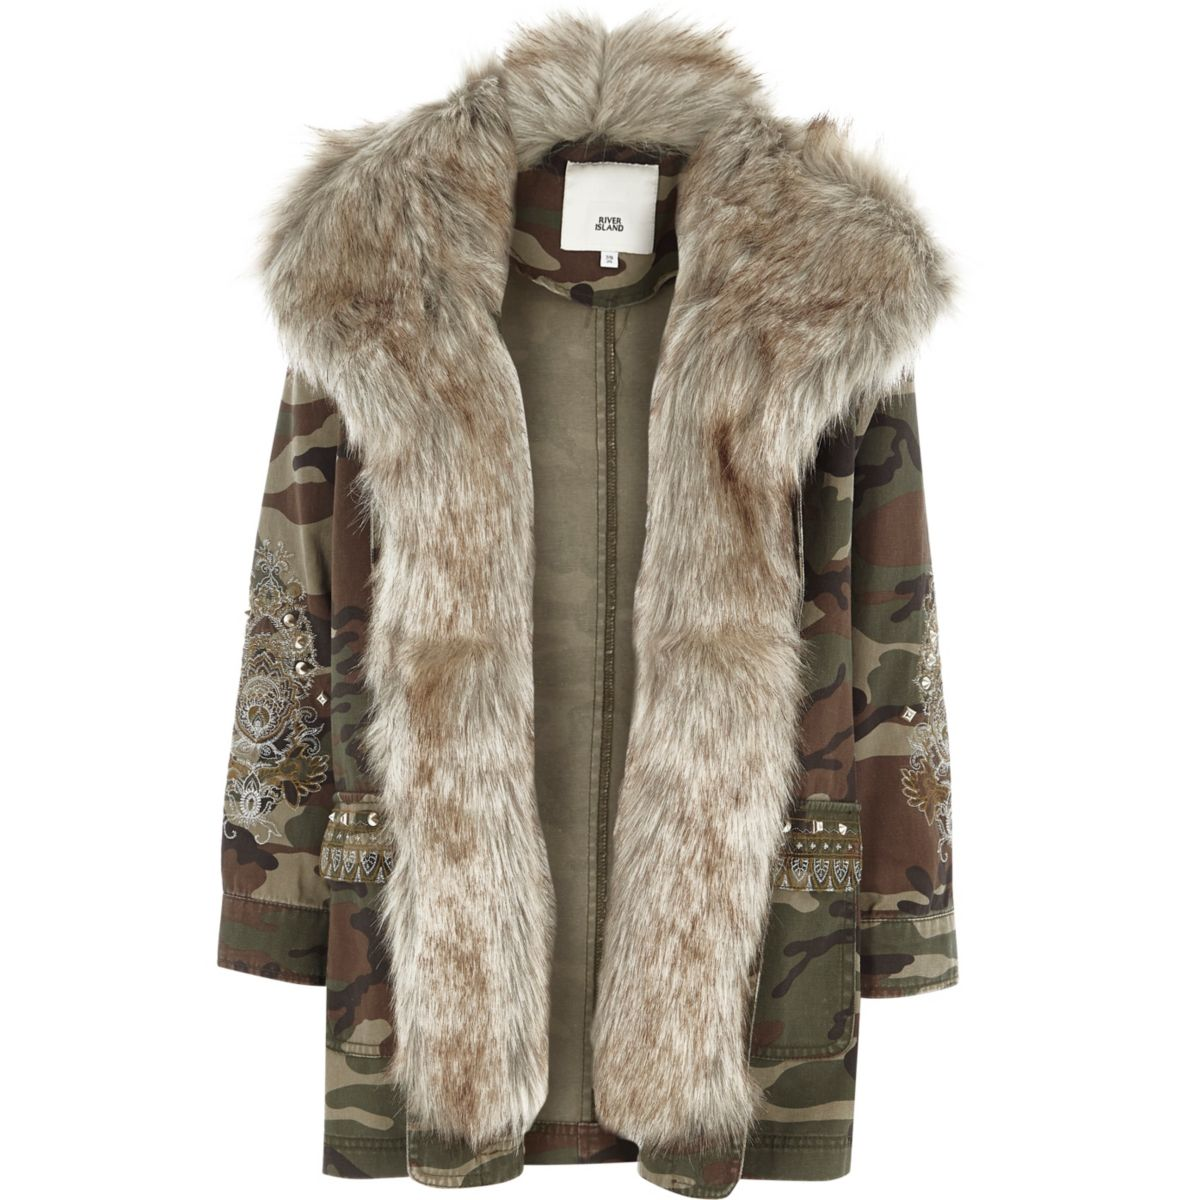 Macy's carries Winter Coats for Girls, including Black Winter Coats for Girls, Pink Winter Coats for Girls and every color in between. Macy's Presents: The Edit- A curated mix of fashion and inspiration Check It Out. DKNY Big Girls Hooded Bubble Jacket with Faux-Fur Trim.